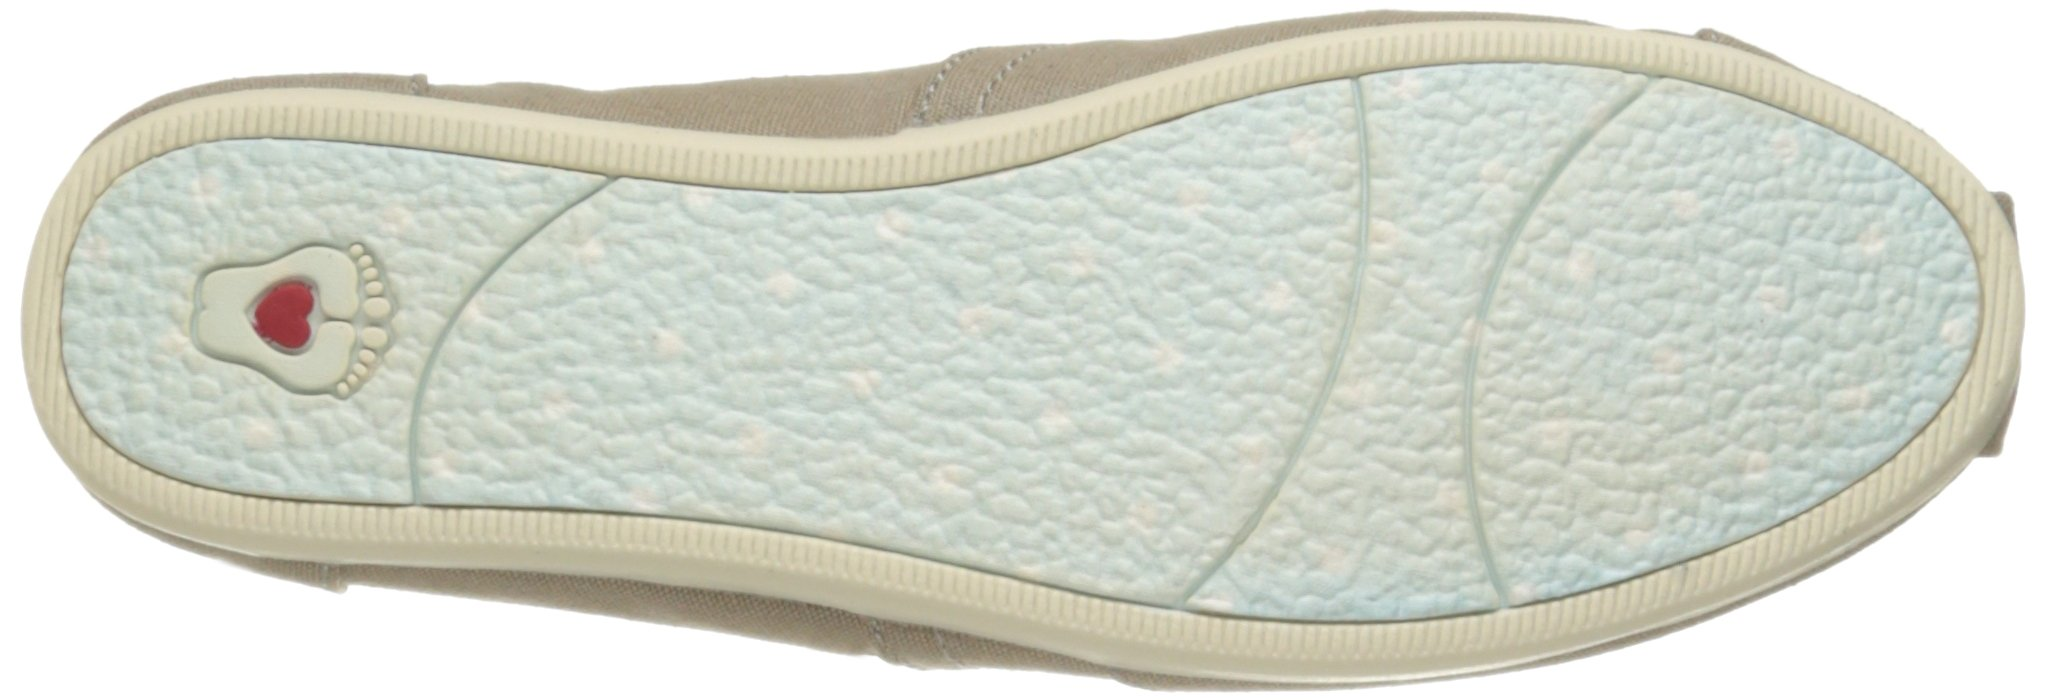 Skechers BOBS Women's Plush-Peace and Love Flat, Taupe, 8.5 W US by Skechers (Image #3)